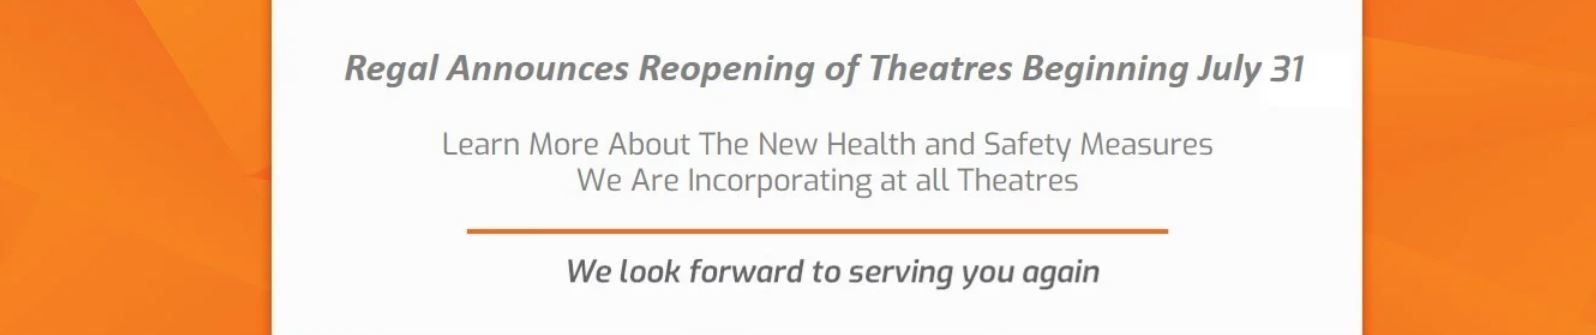 Theatres Re Opening